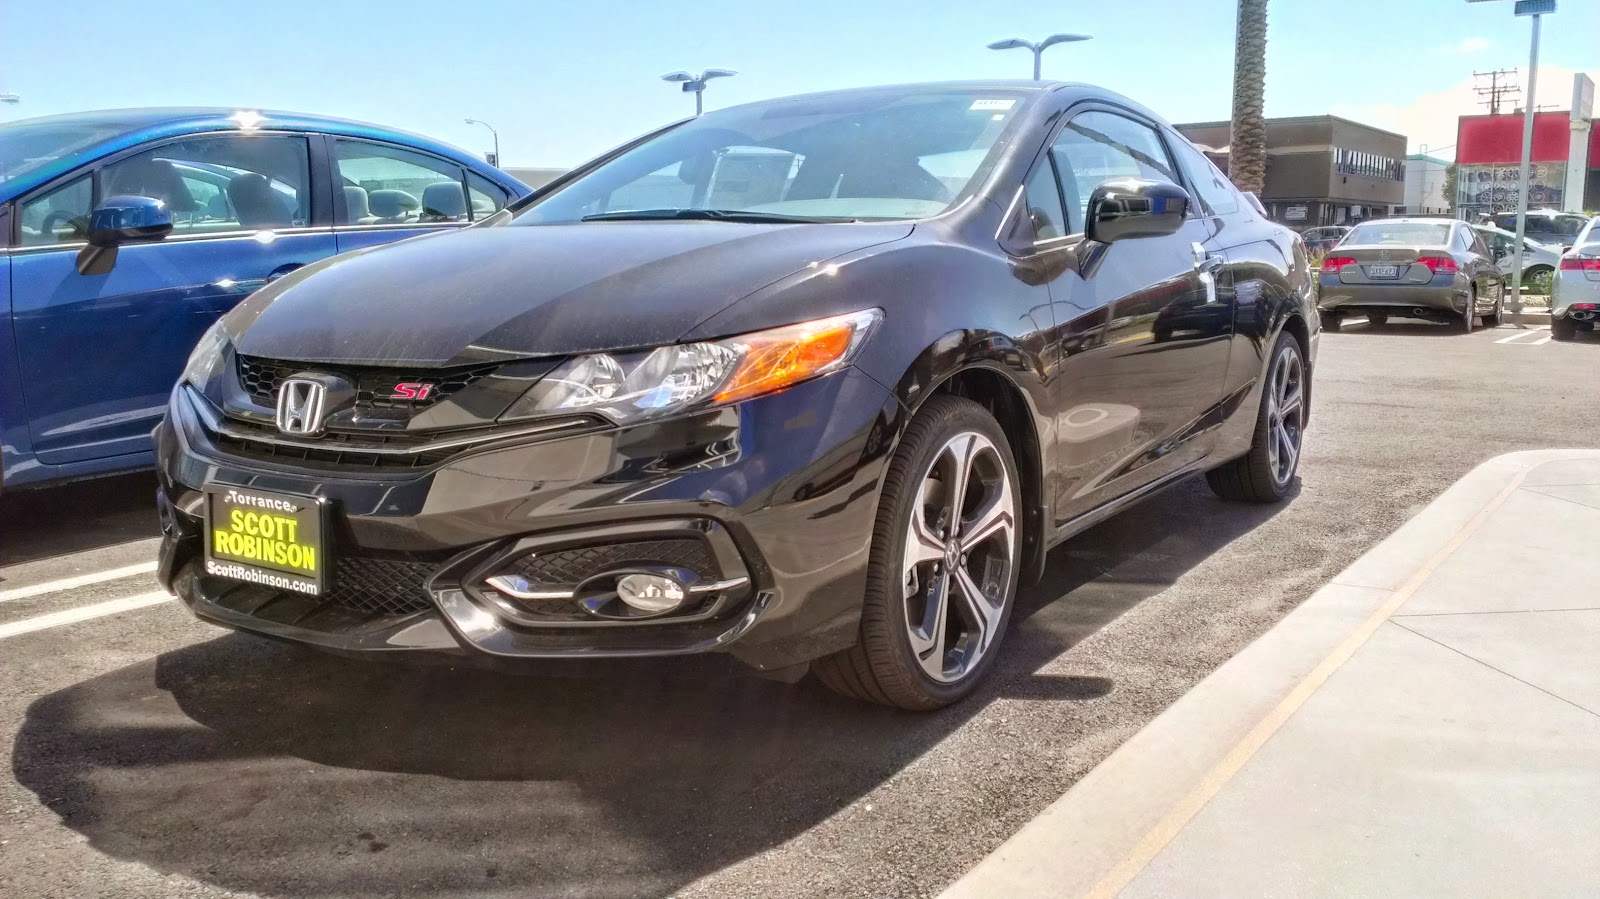 Since the year 2011 i have test driven a new civic si every year in 2011 i test drove the final model year of the eighth generation civic si sedan